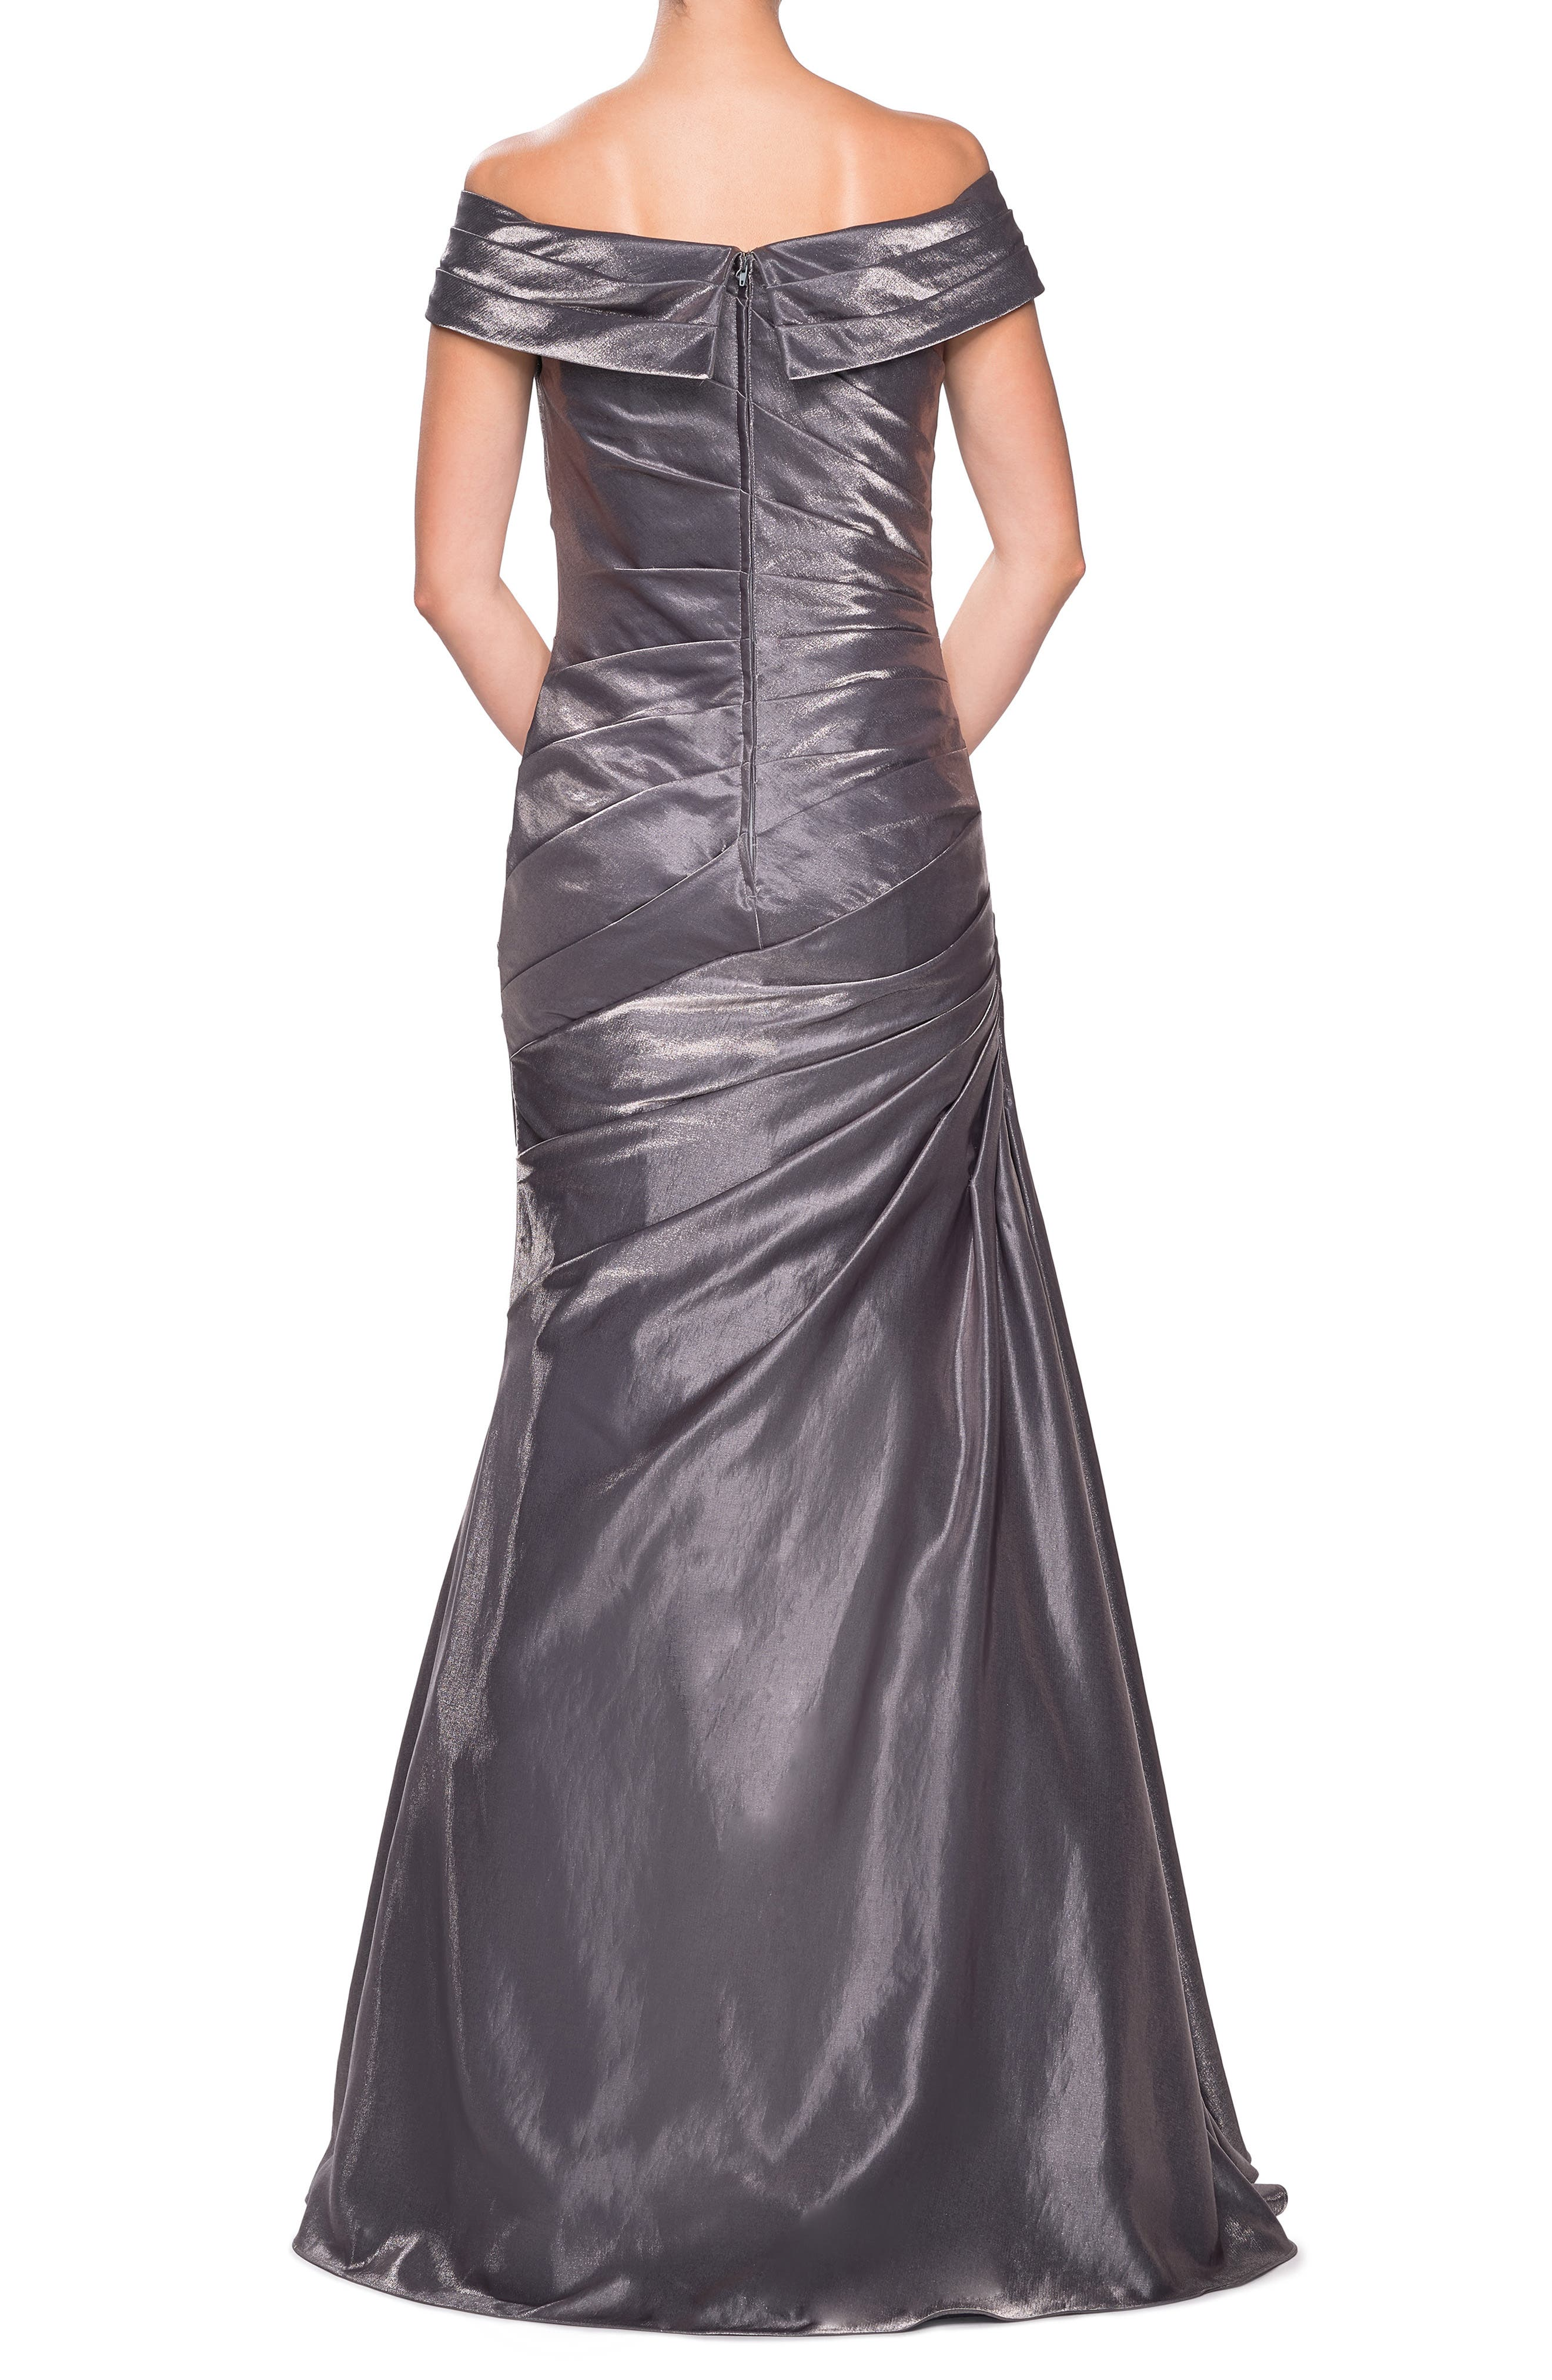 LA FEMME, Ruched Two-Tone Satin Gown, Alternate thumbnail 2, color, PLATINUM